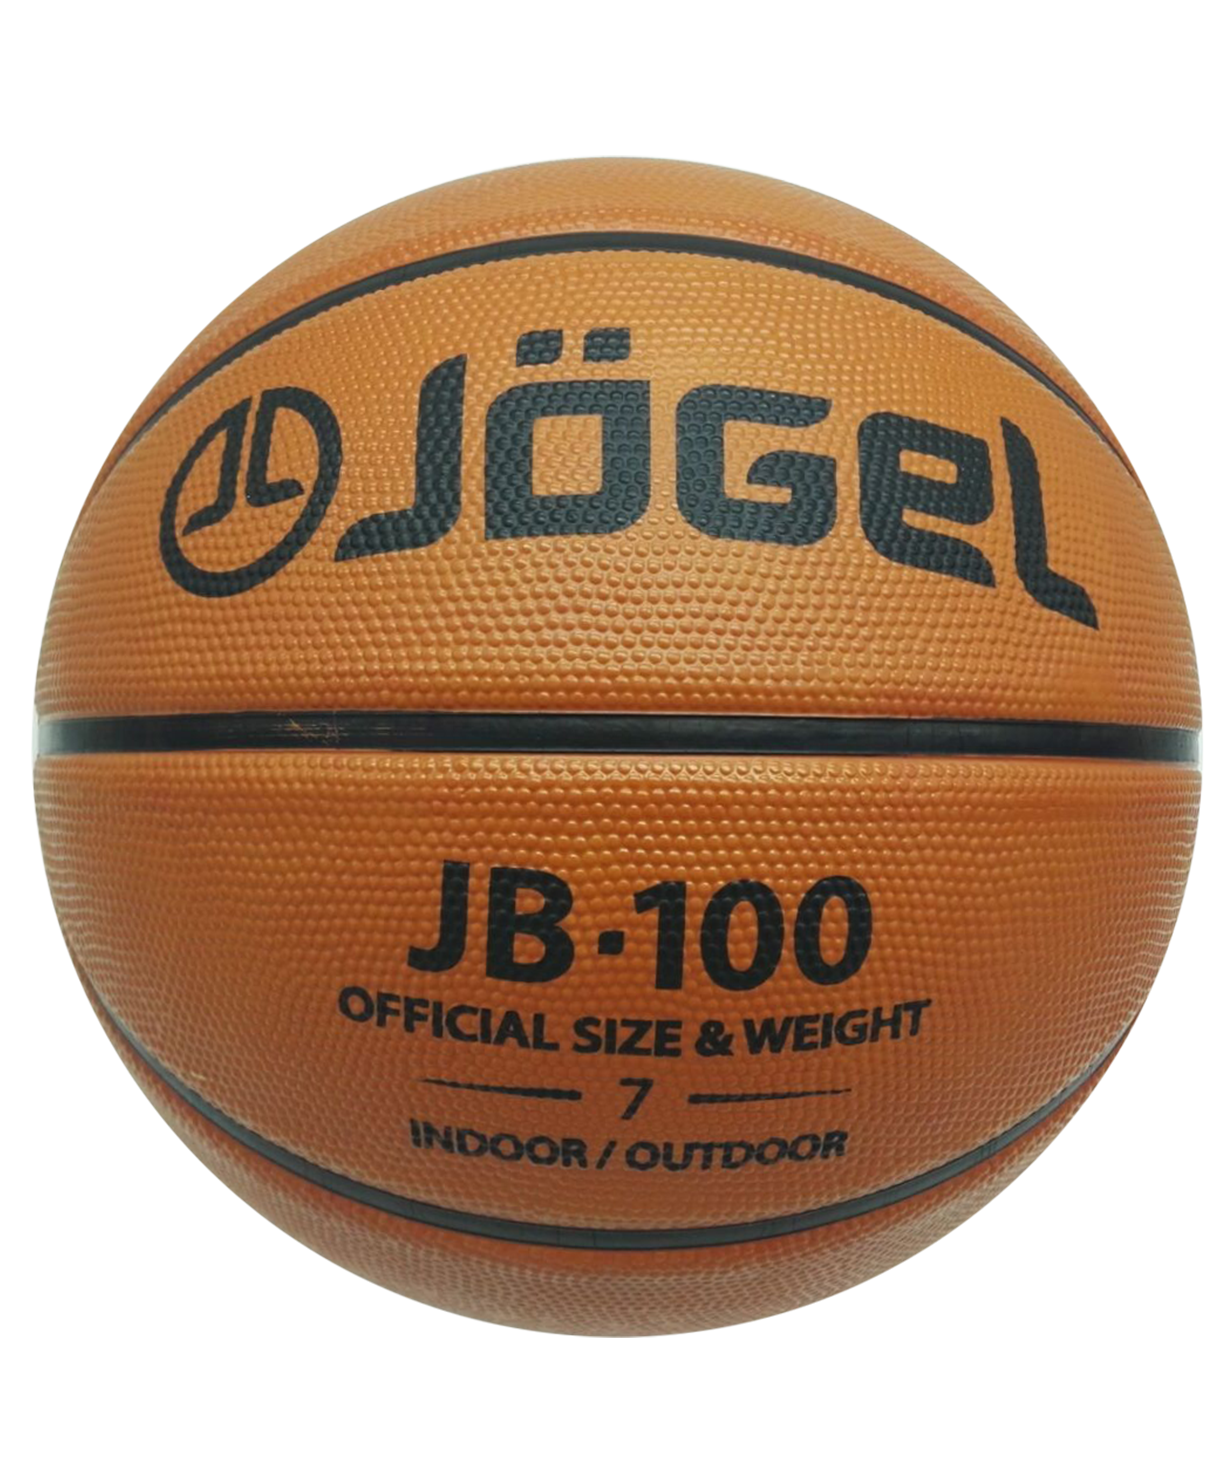 myach-basketbolnyj-jb-100-7